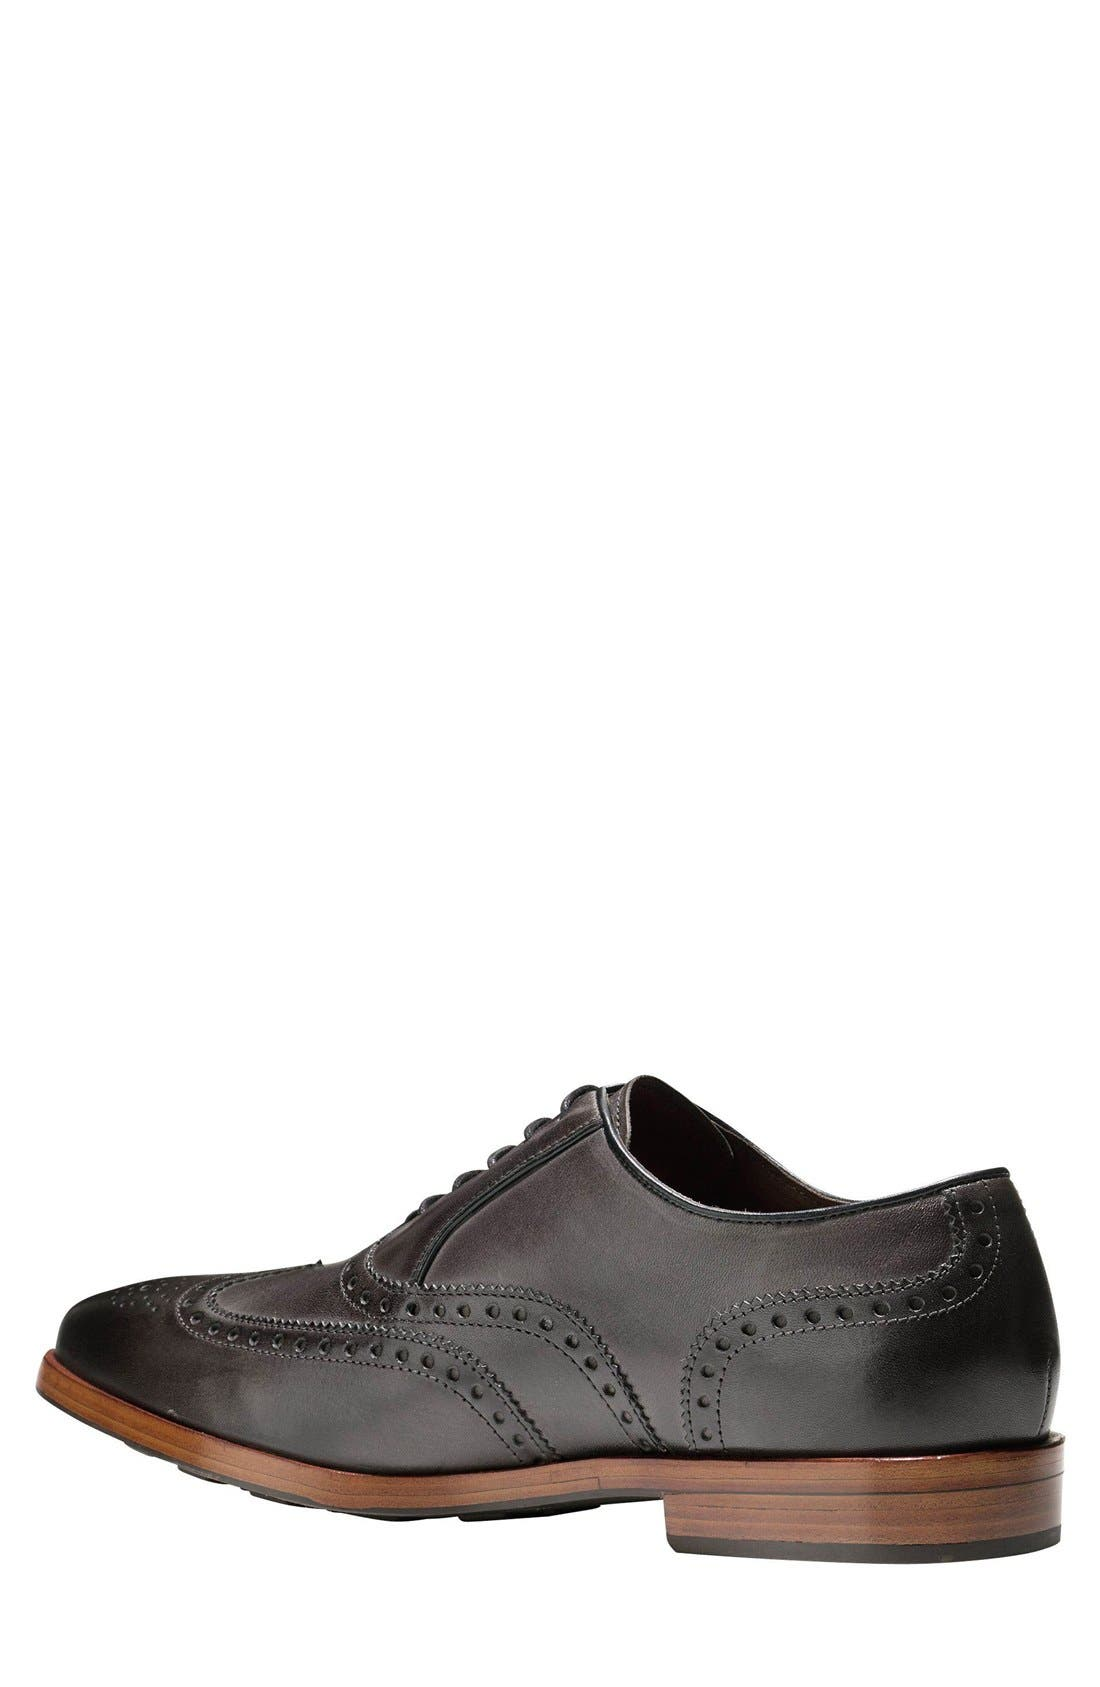 Hamilton Wingtip,                             Alternate thumbnail 2, color,                             Dark Grey